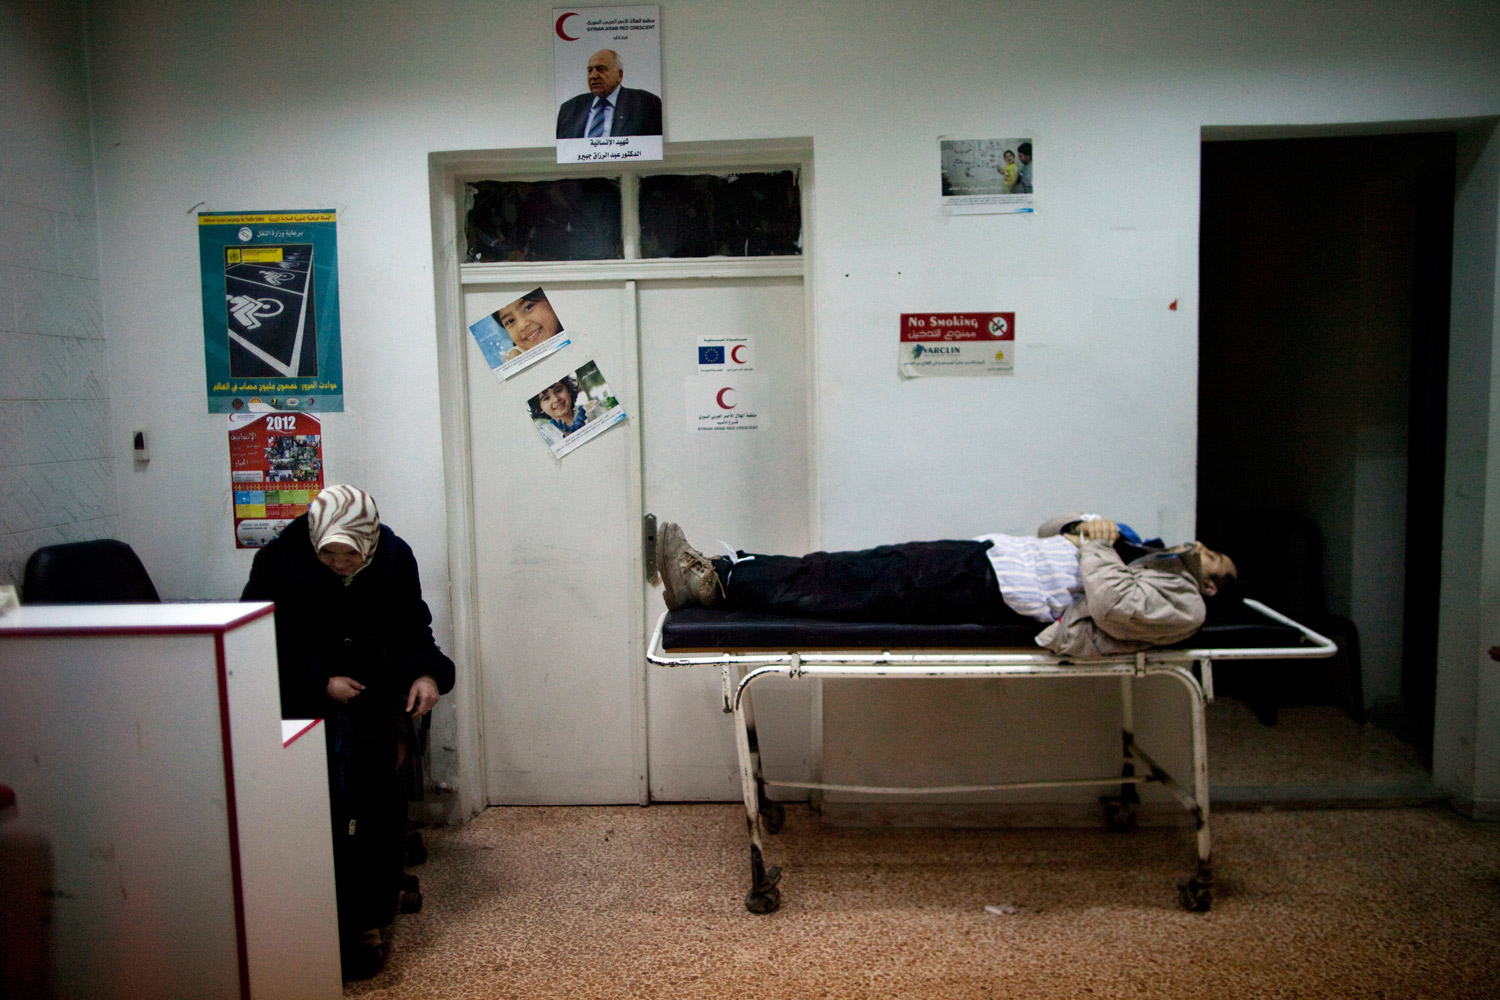 March 11, 2012. The wife of Mohammed Halak slumps in a chair next to his body as she mourns the death of her husband.